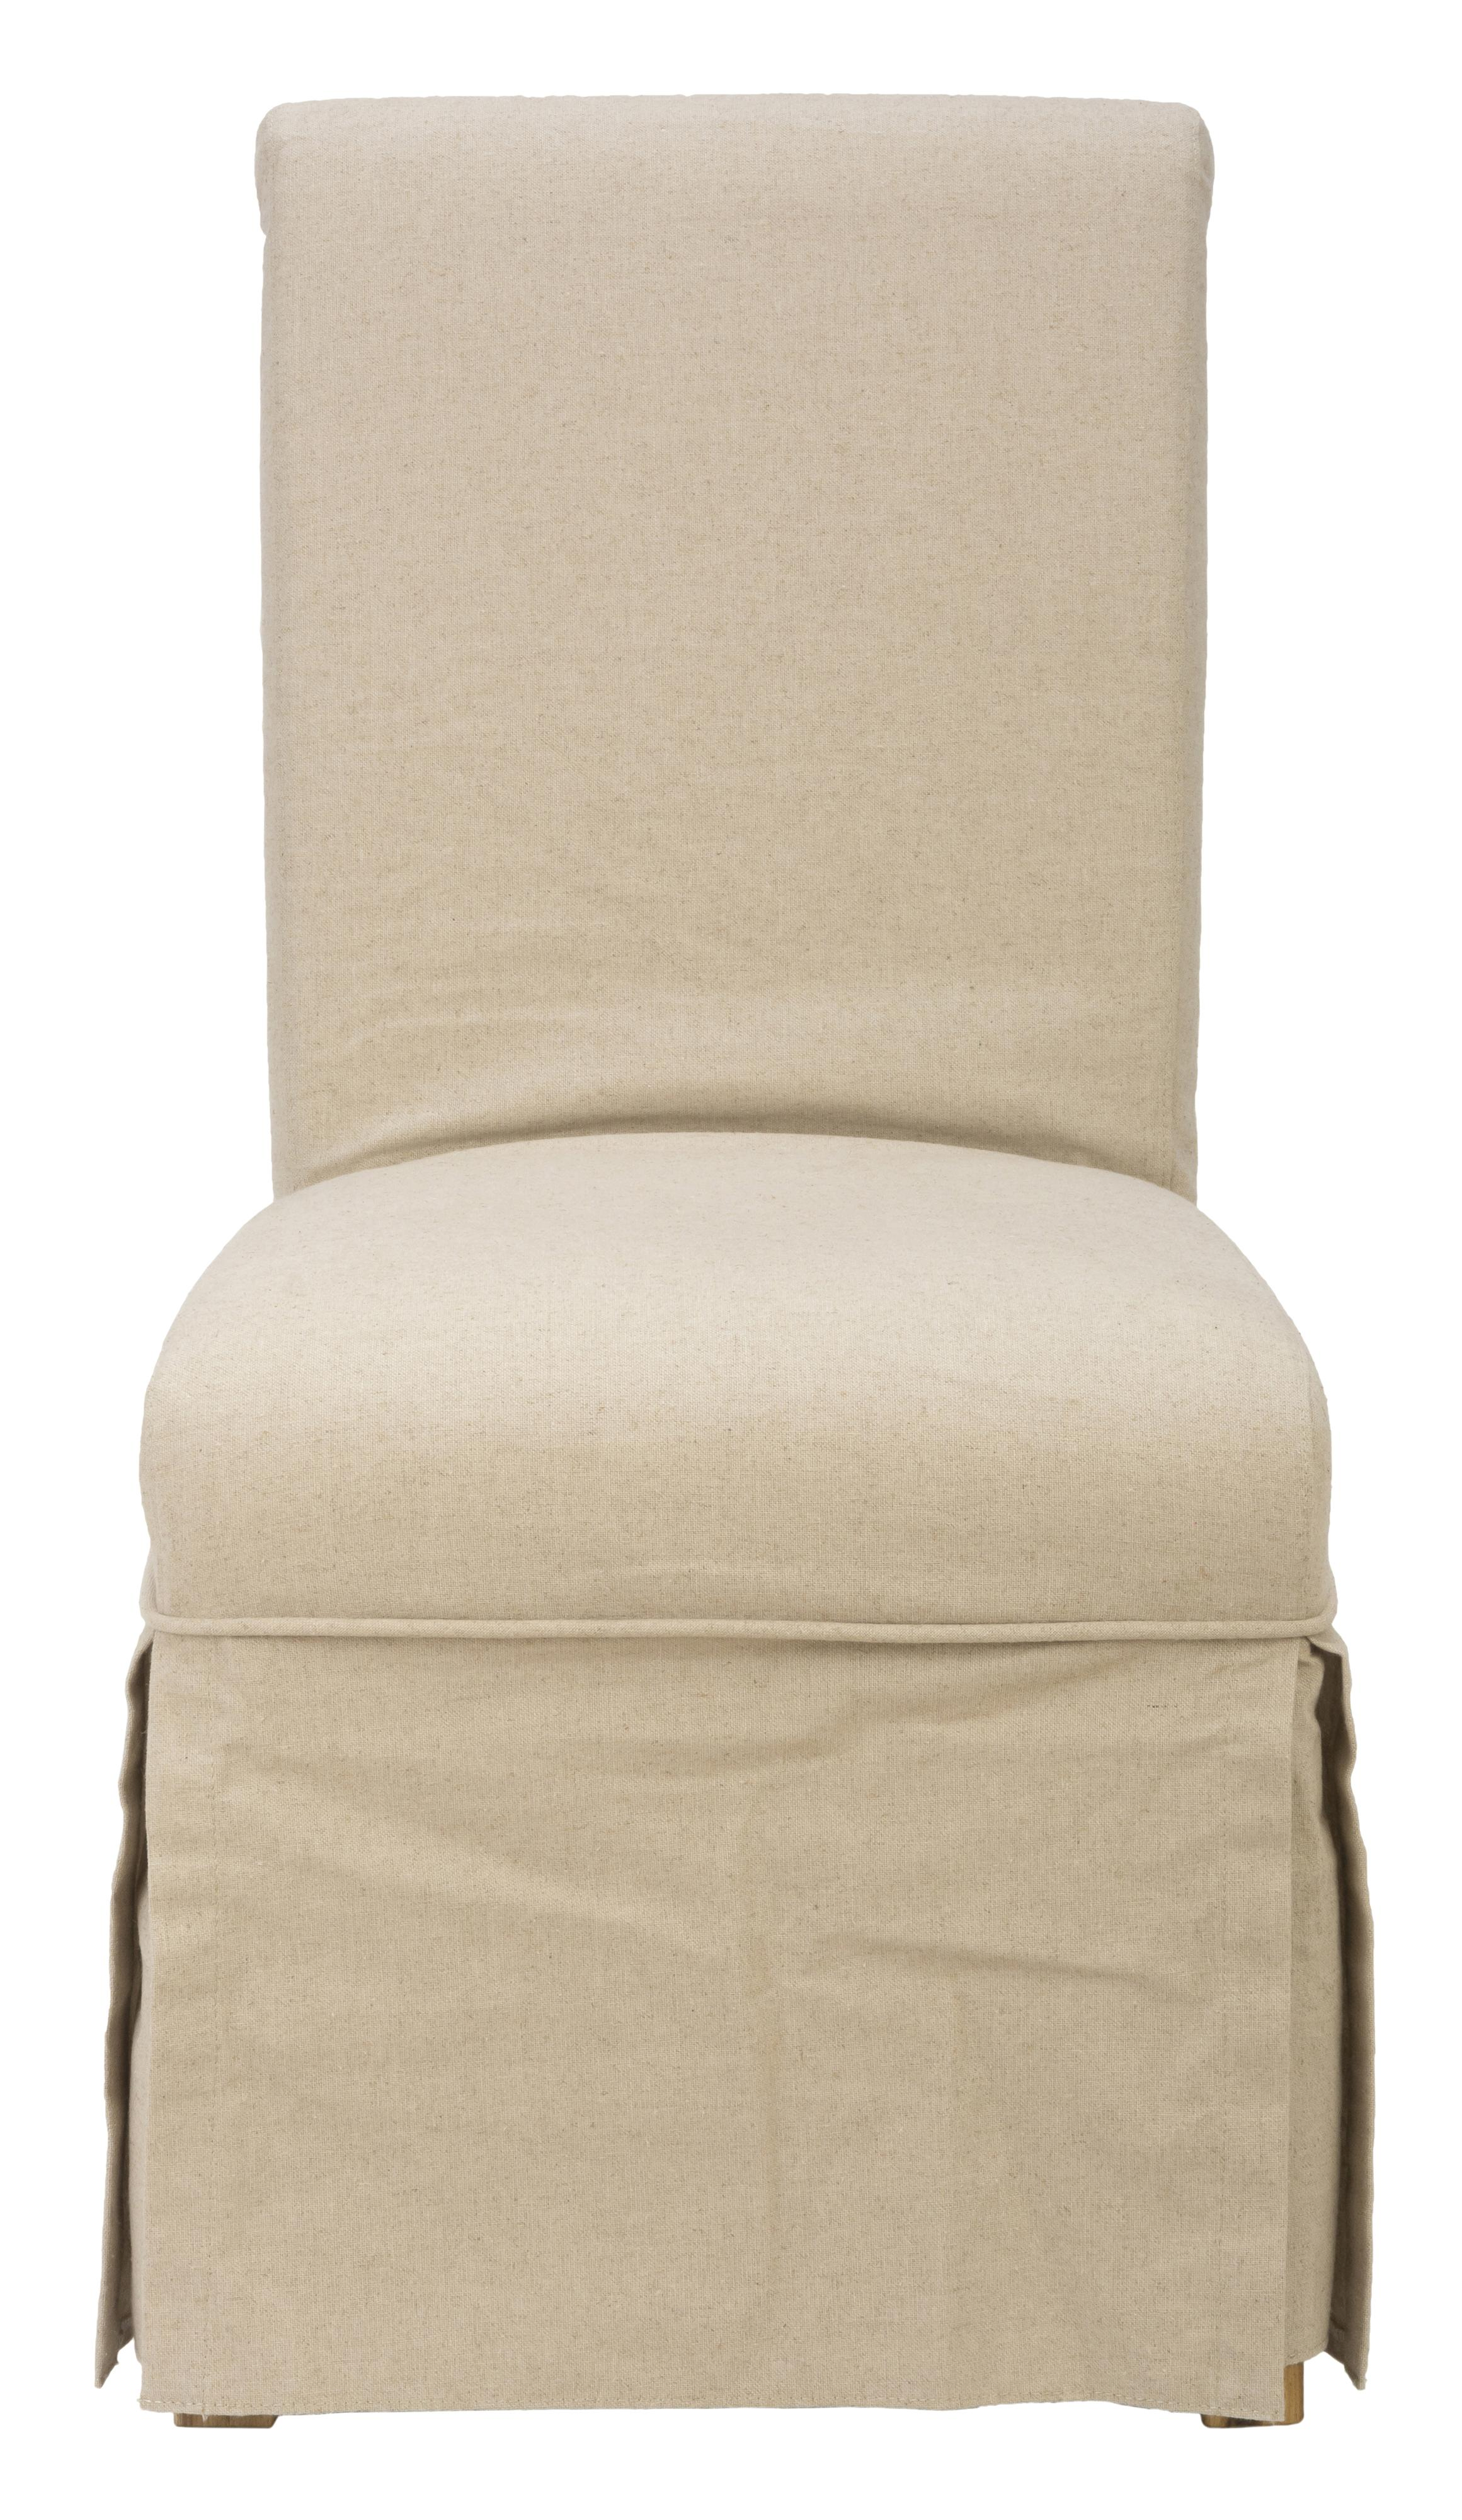 Slipcover Skirted Parson Chair With Linen Look By Jofran